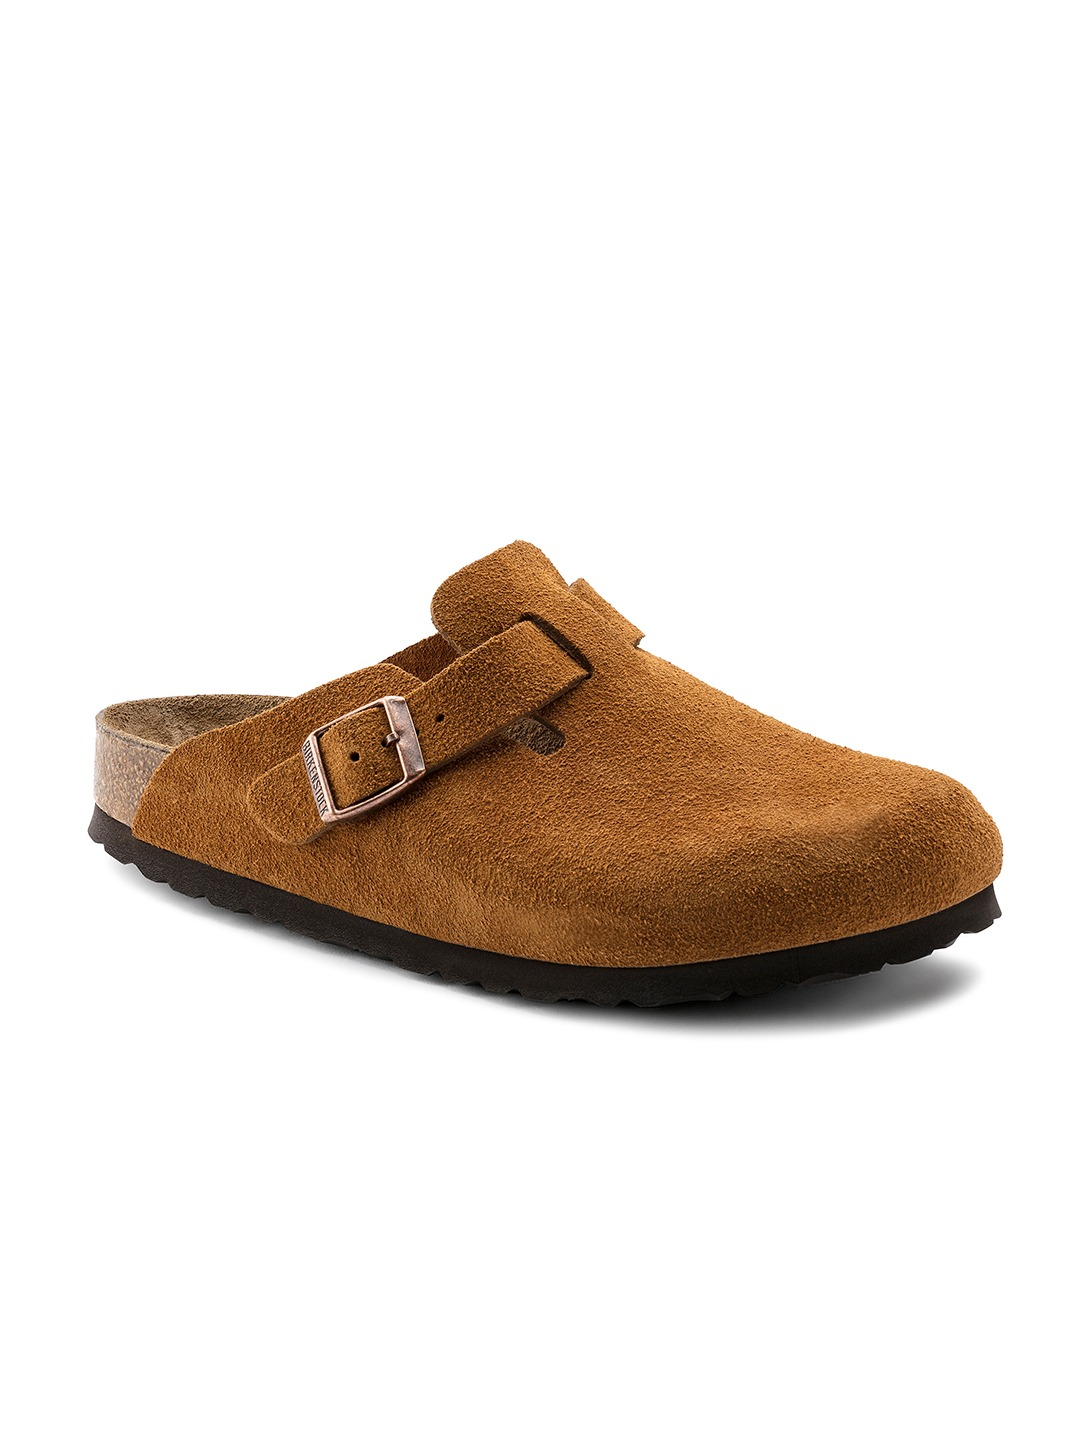 Tan Brown Boston Suede Leather  Comfort Sandals